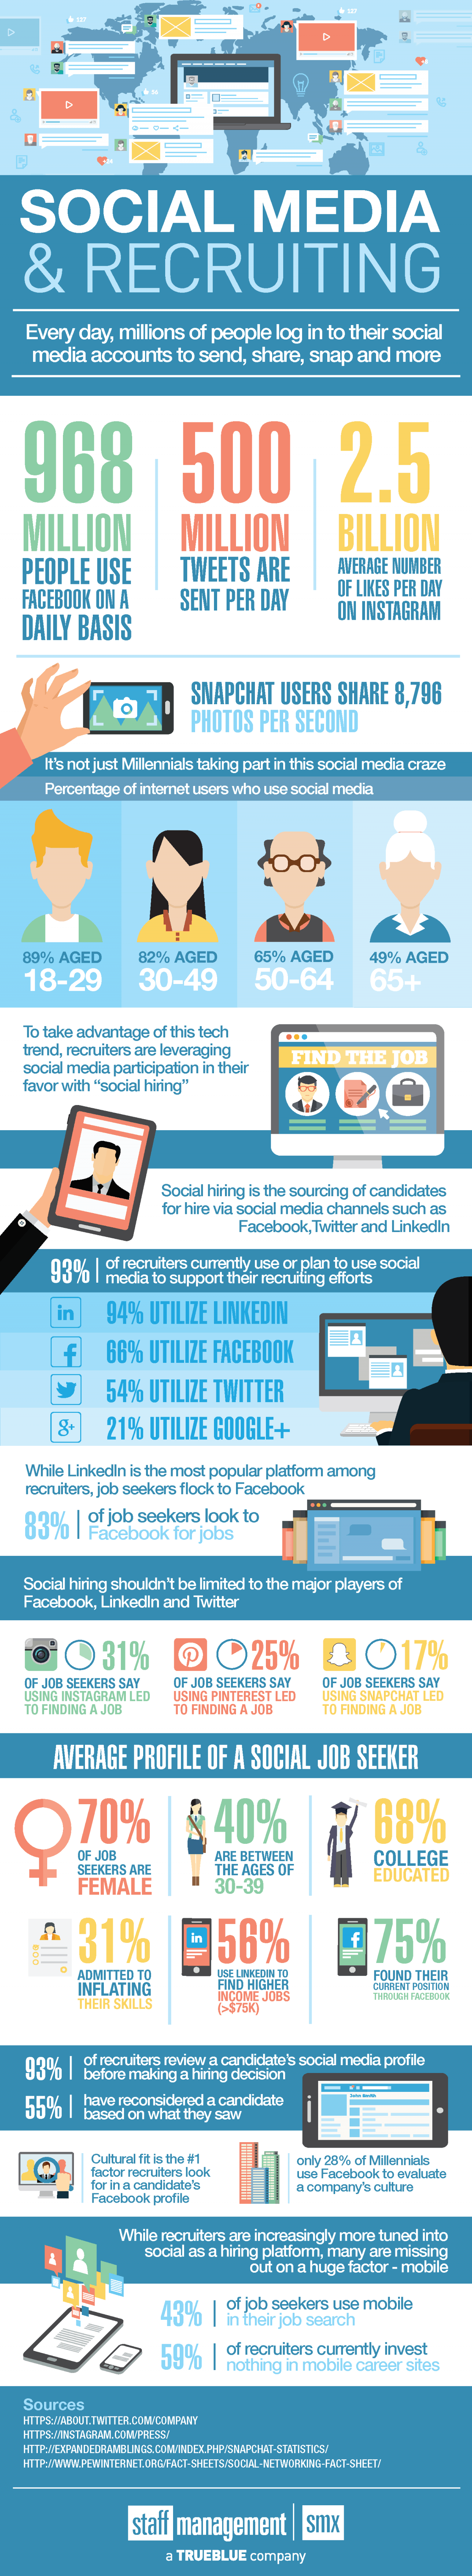 Recruiting new employees via social media infographic